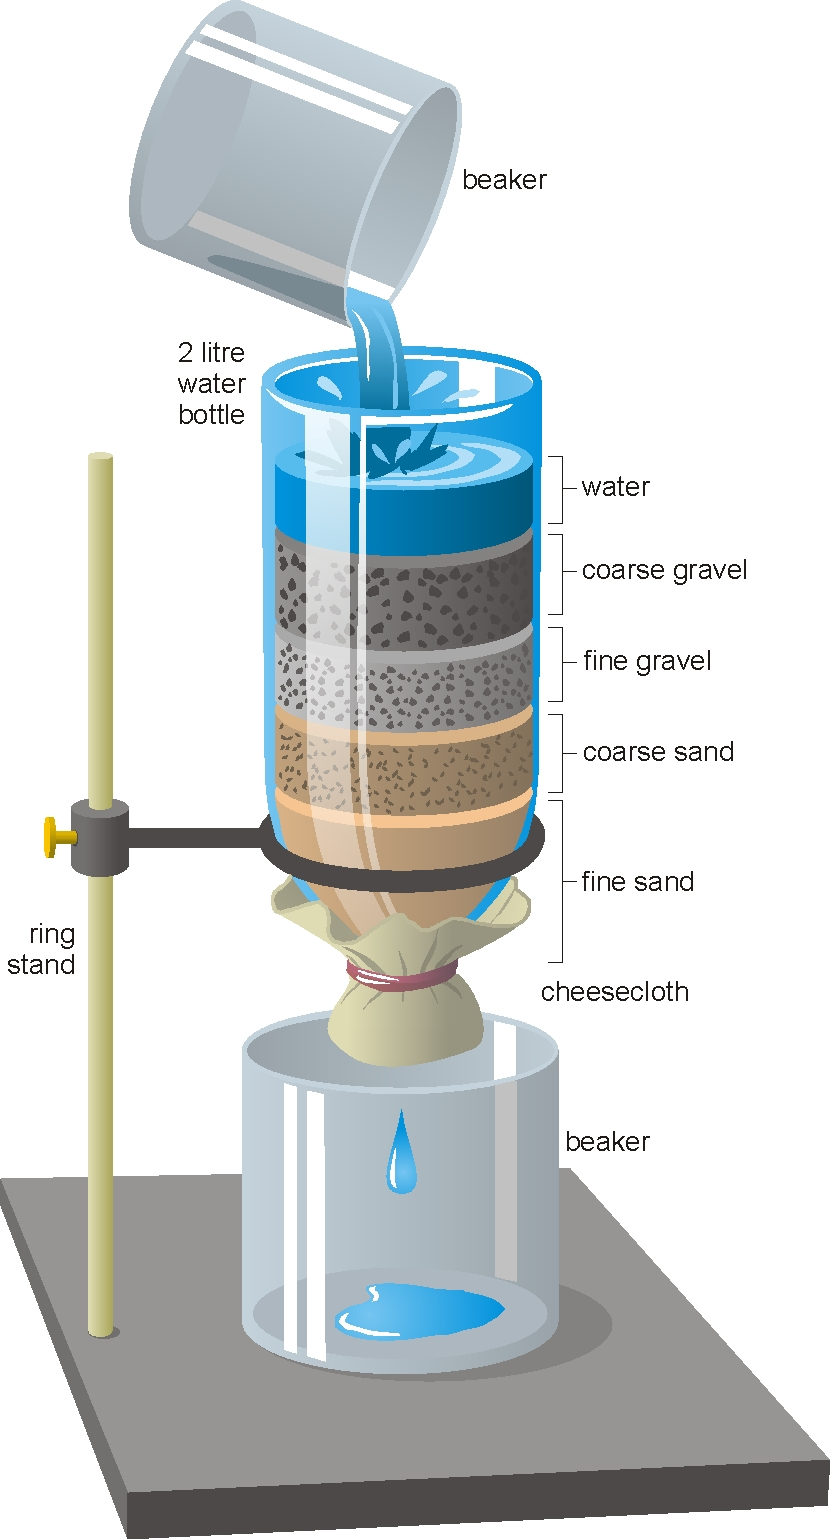 homemade water filter. Water In Our Community Crd Rh Bc Ca Homemade Filter Diagram  Simple